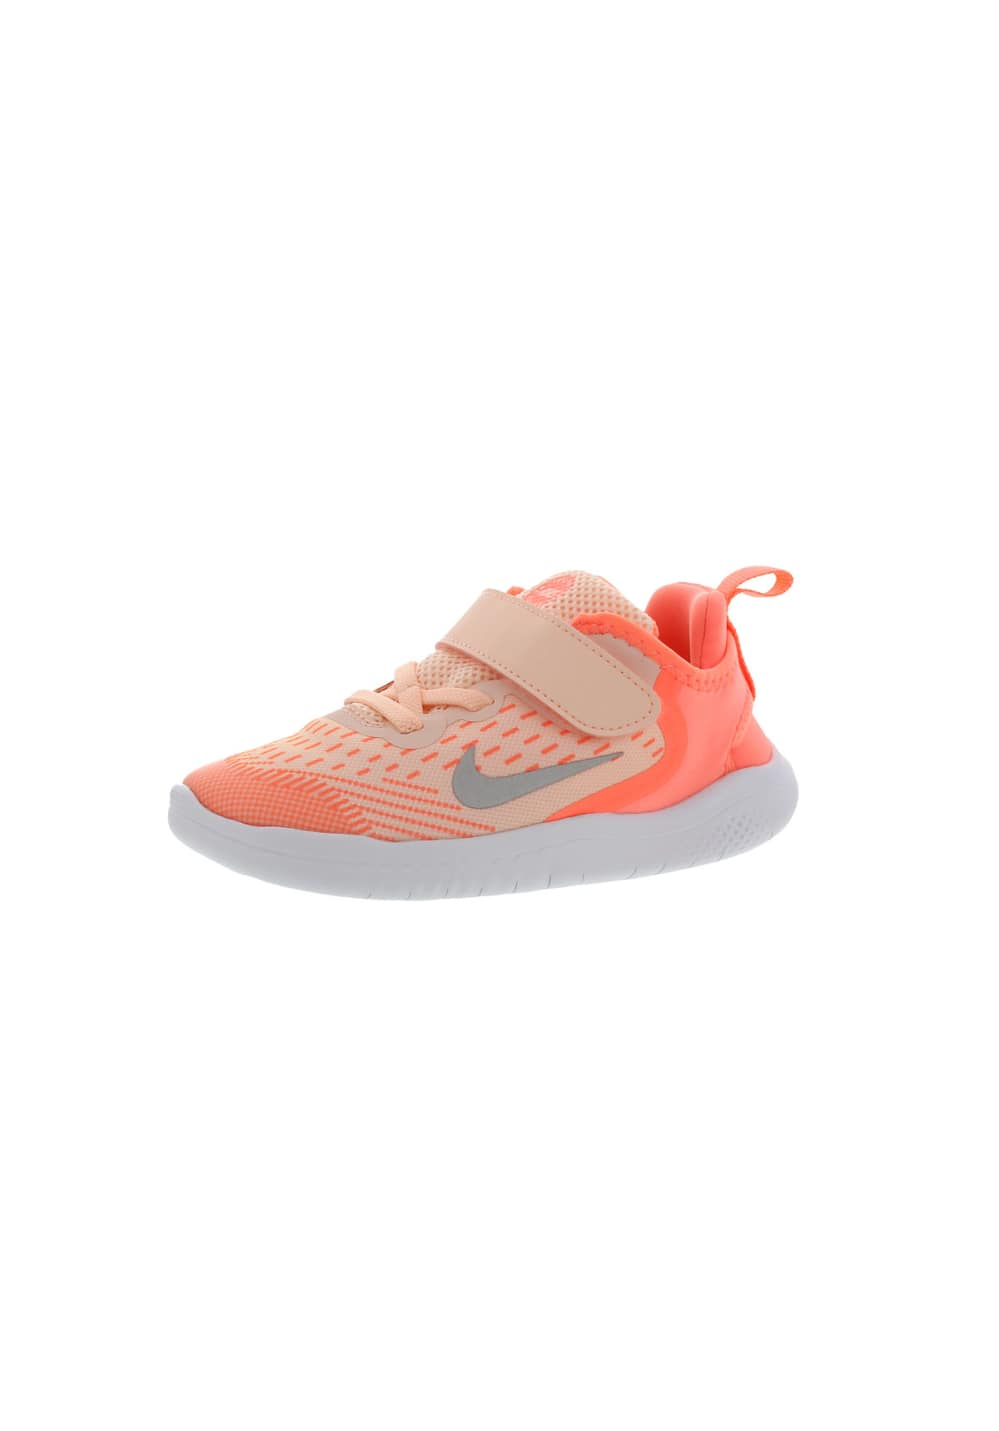 ebe2d63f9779 Nike Free RN 2018 - Running shoes - Pink